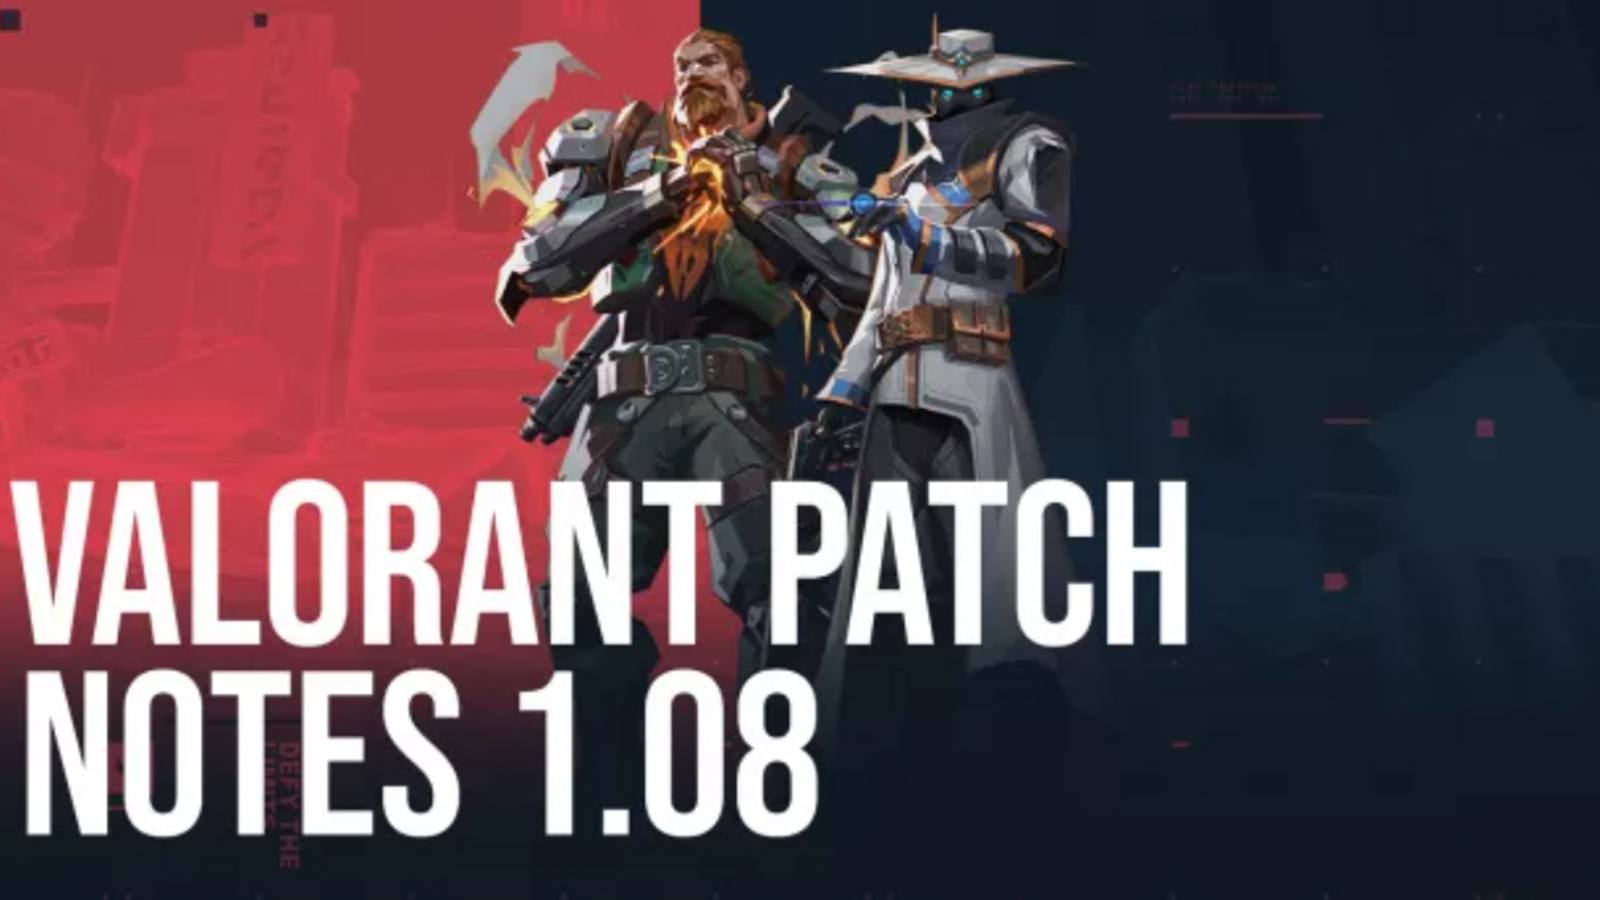 Patch notes MAJ Valorant 1.08